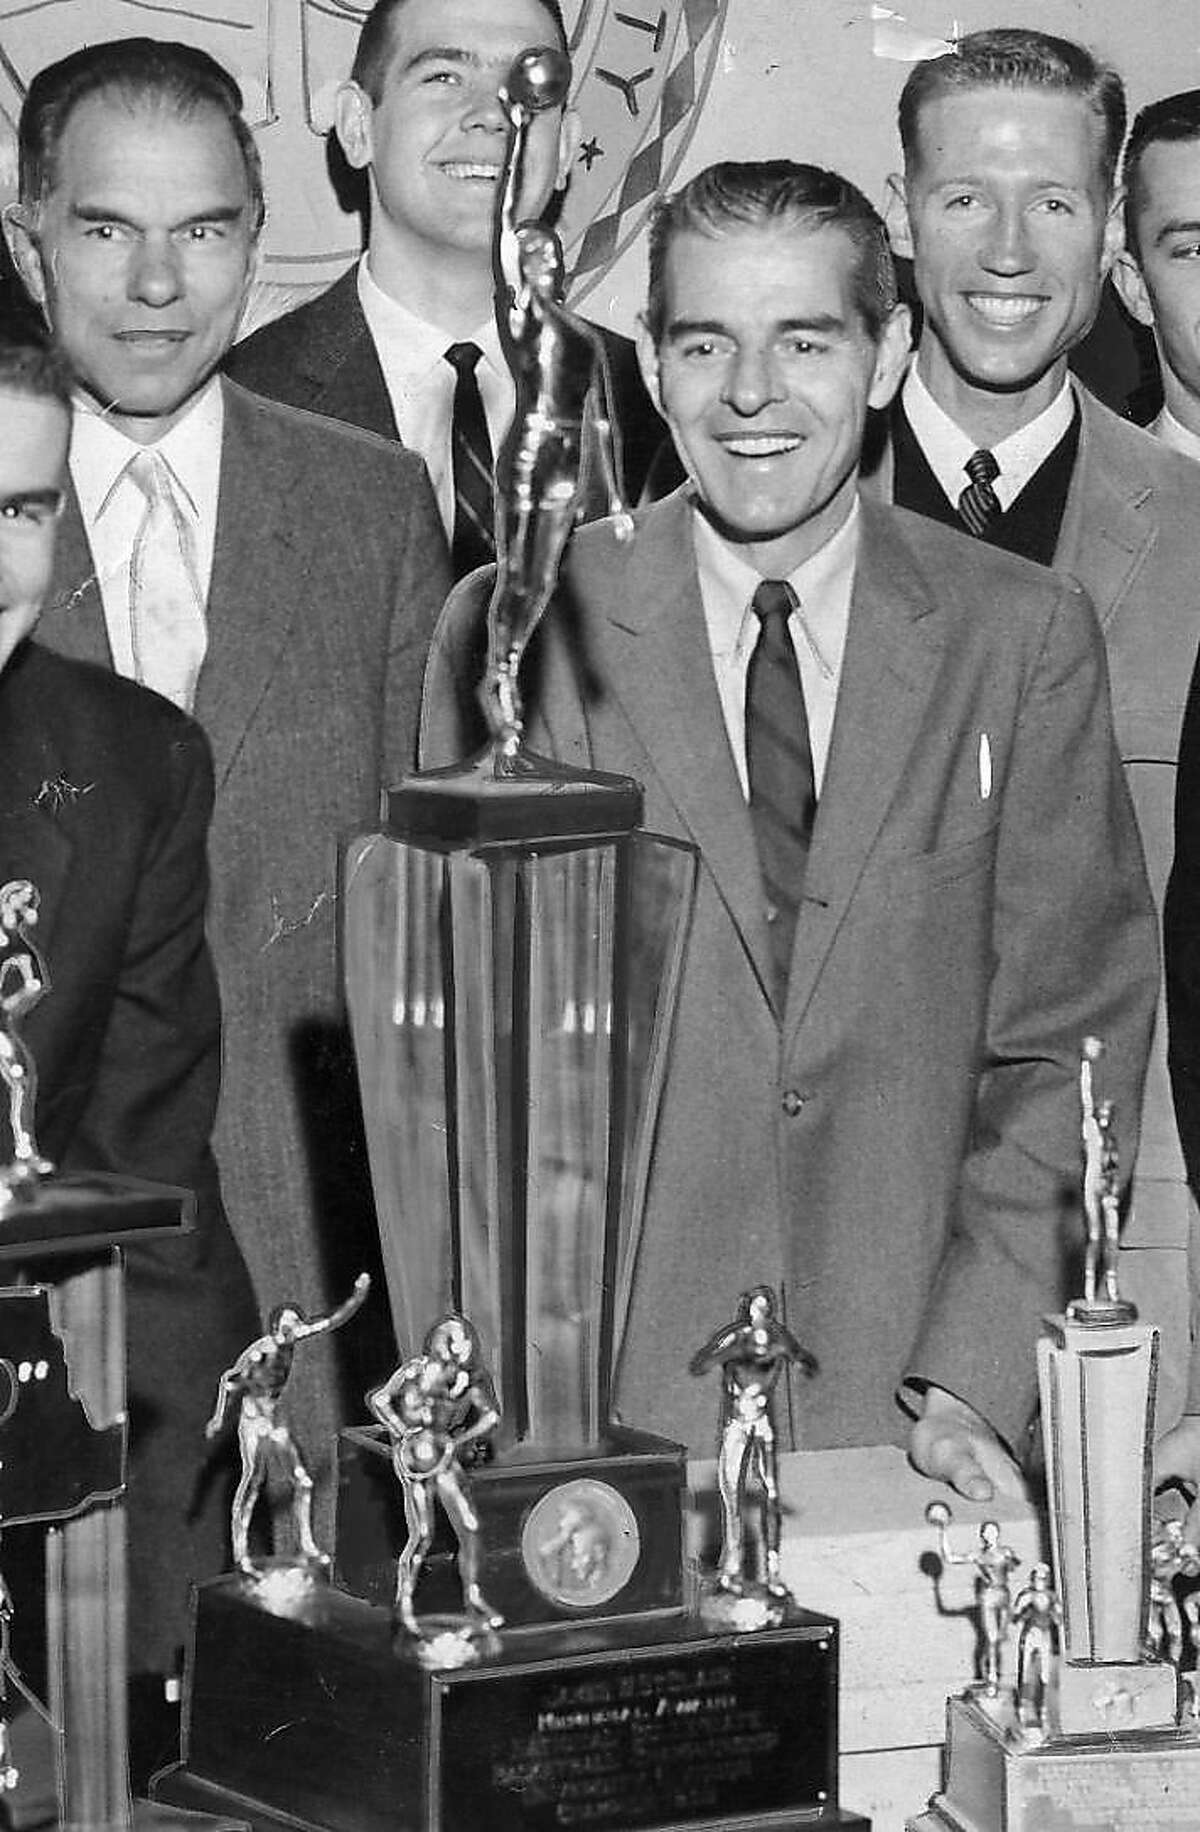 Pete Newell, to right of the big NCAA championship trophy, stands next to UC Berkeley Chancellor Glenn Seaborg, left, on March 23, 1959 after Cal won the 1959 NCAA men's basketball championship.